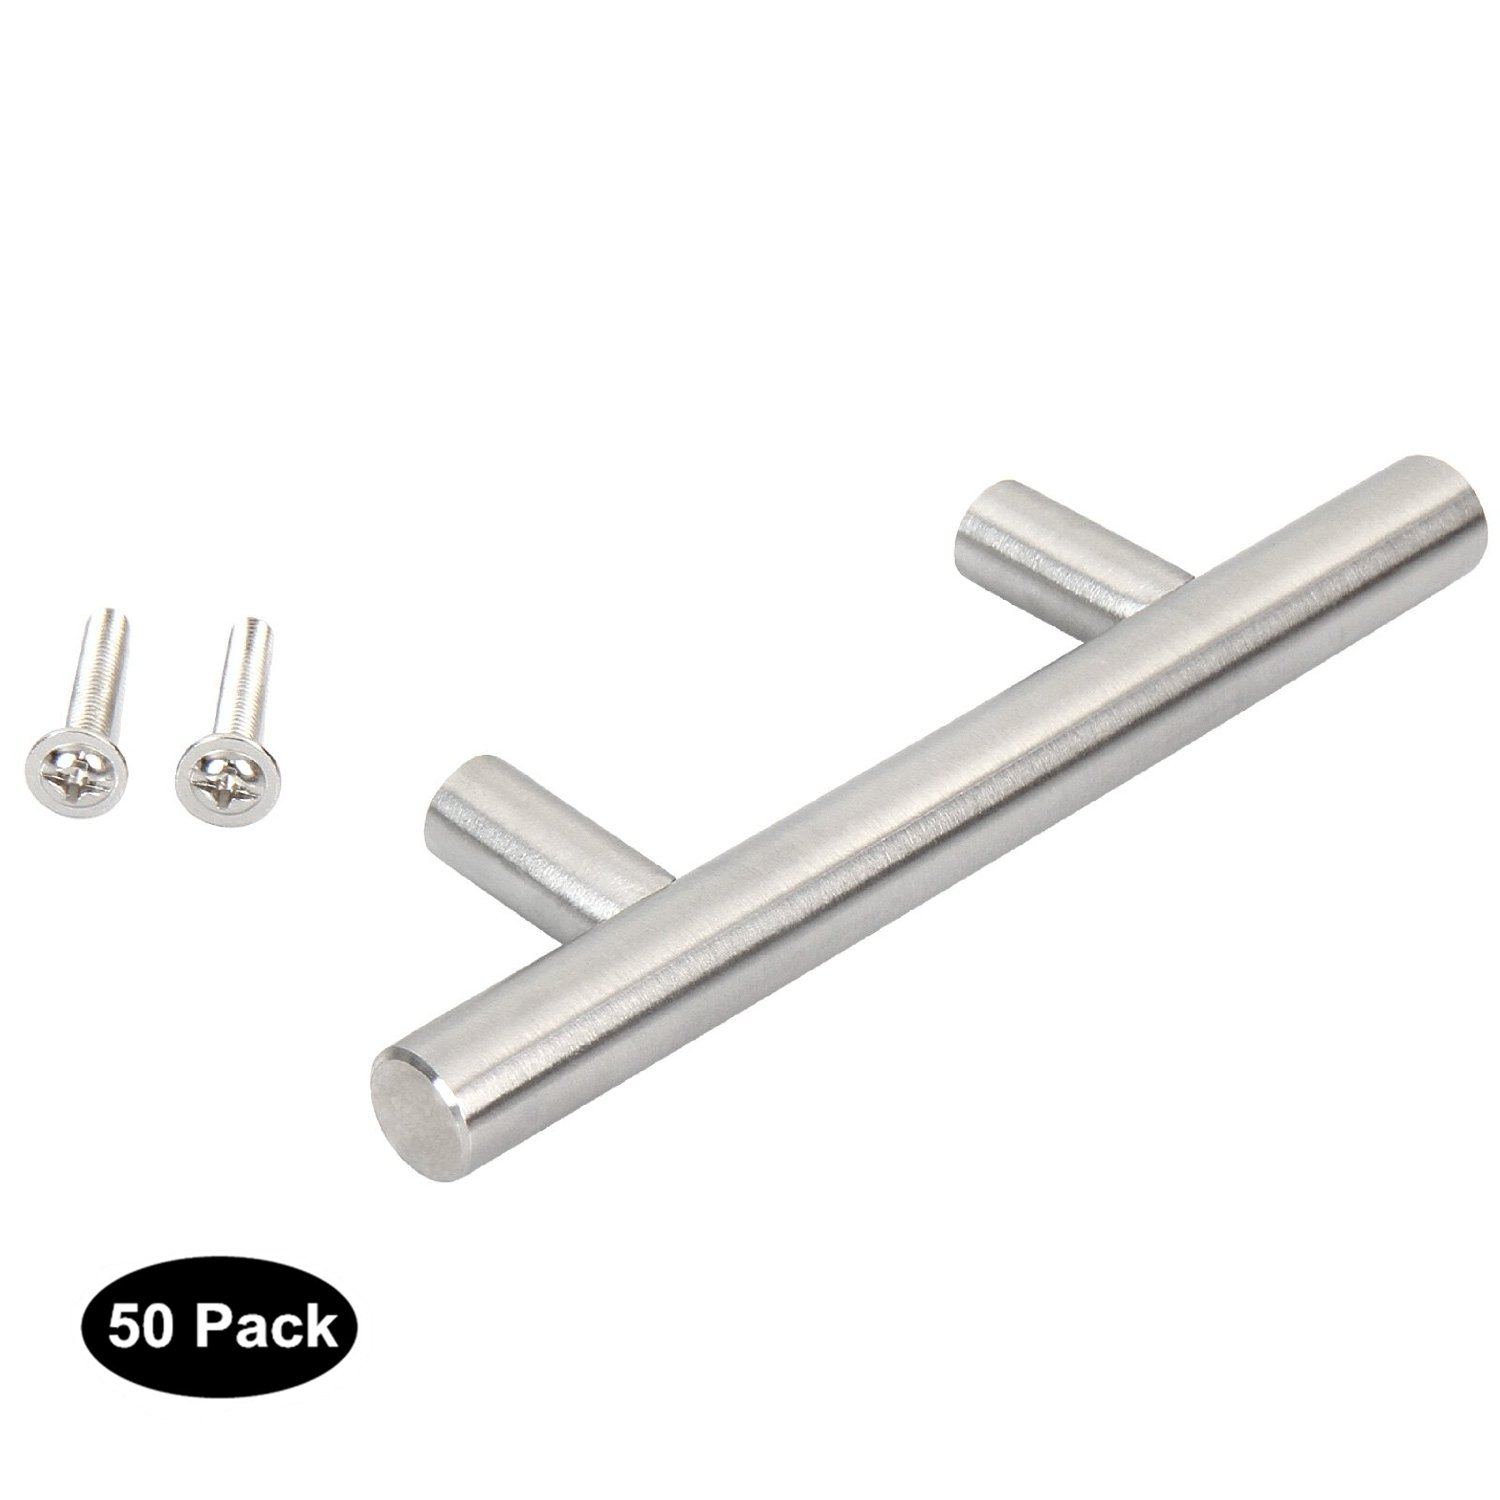 50pack Solid Brushed Stainless Steel T Bar Kitchen Cabinet Door Handles Drawer Pull Knobs Overall Length:100mm-4in,Hole Centers:64mm-2.5in